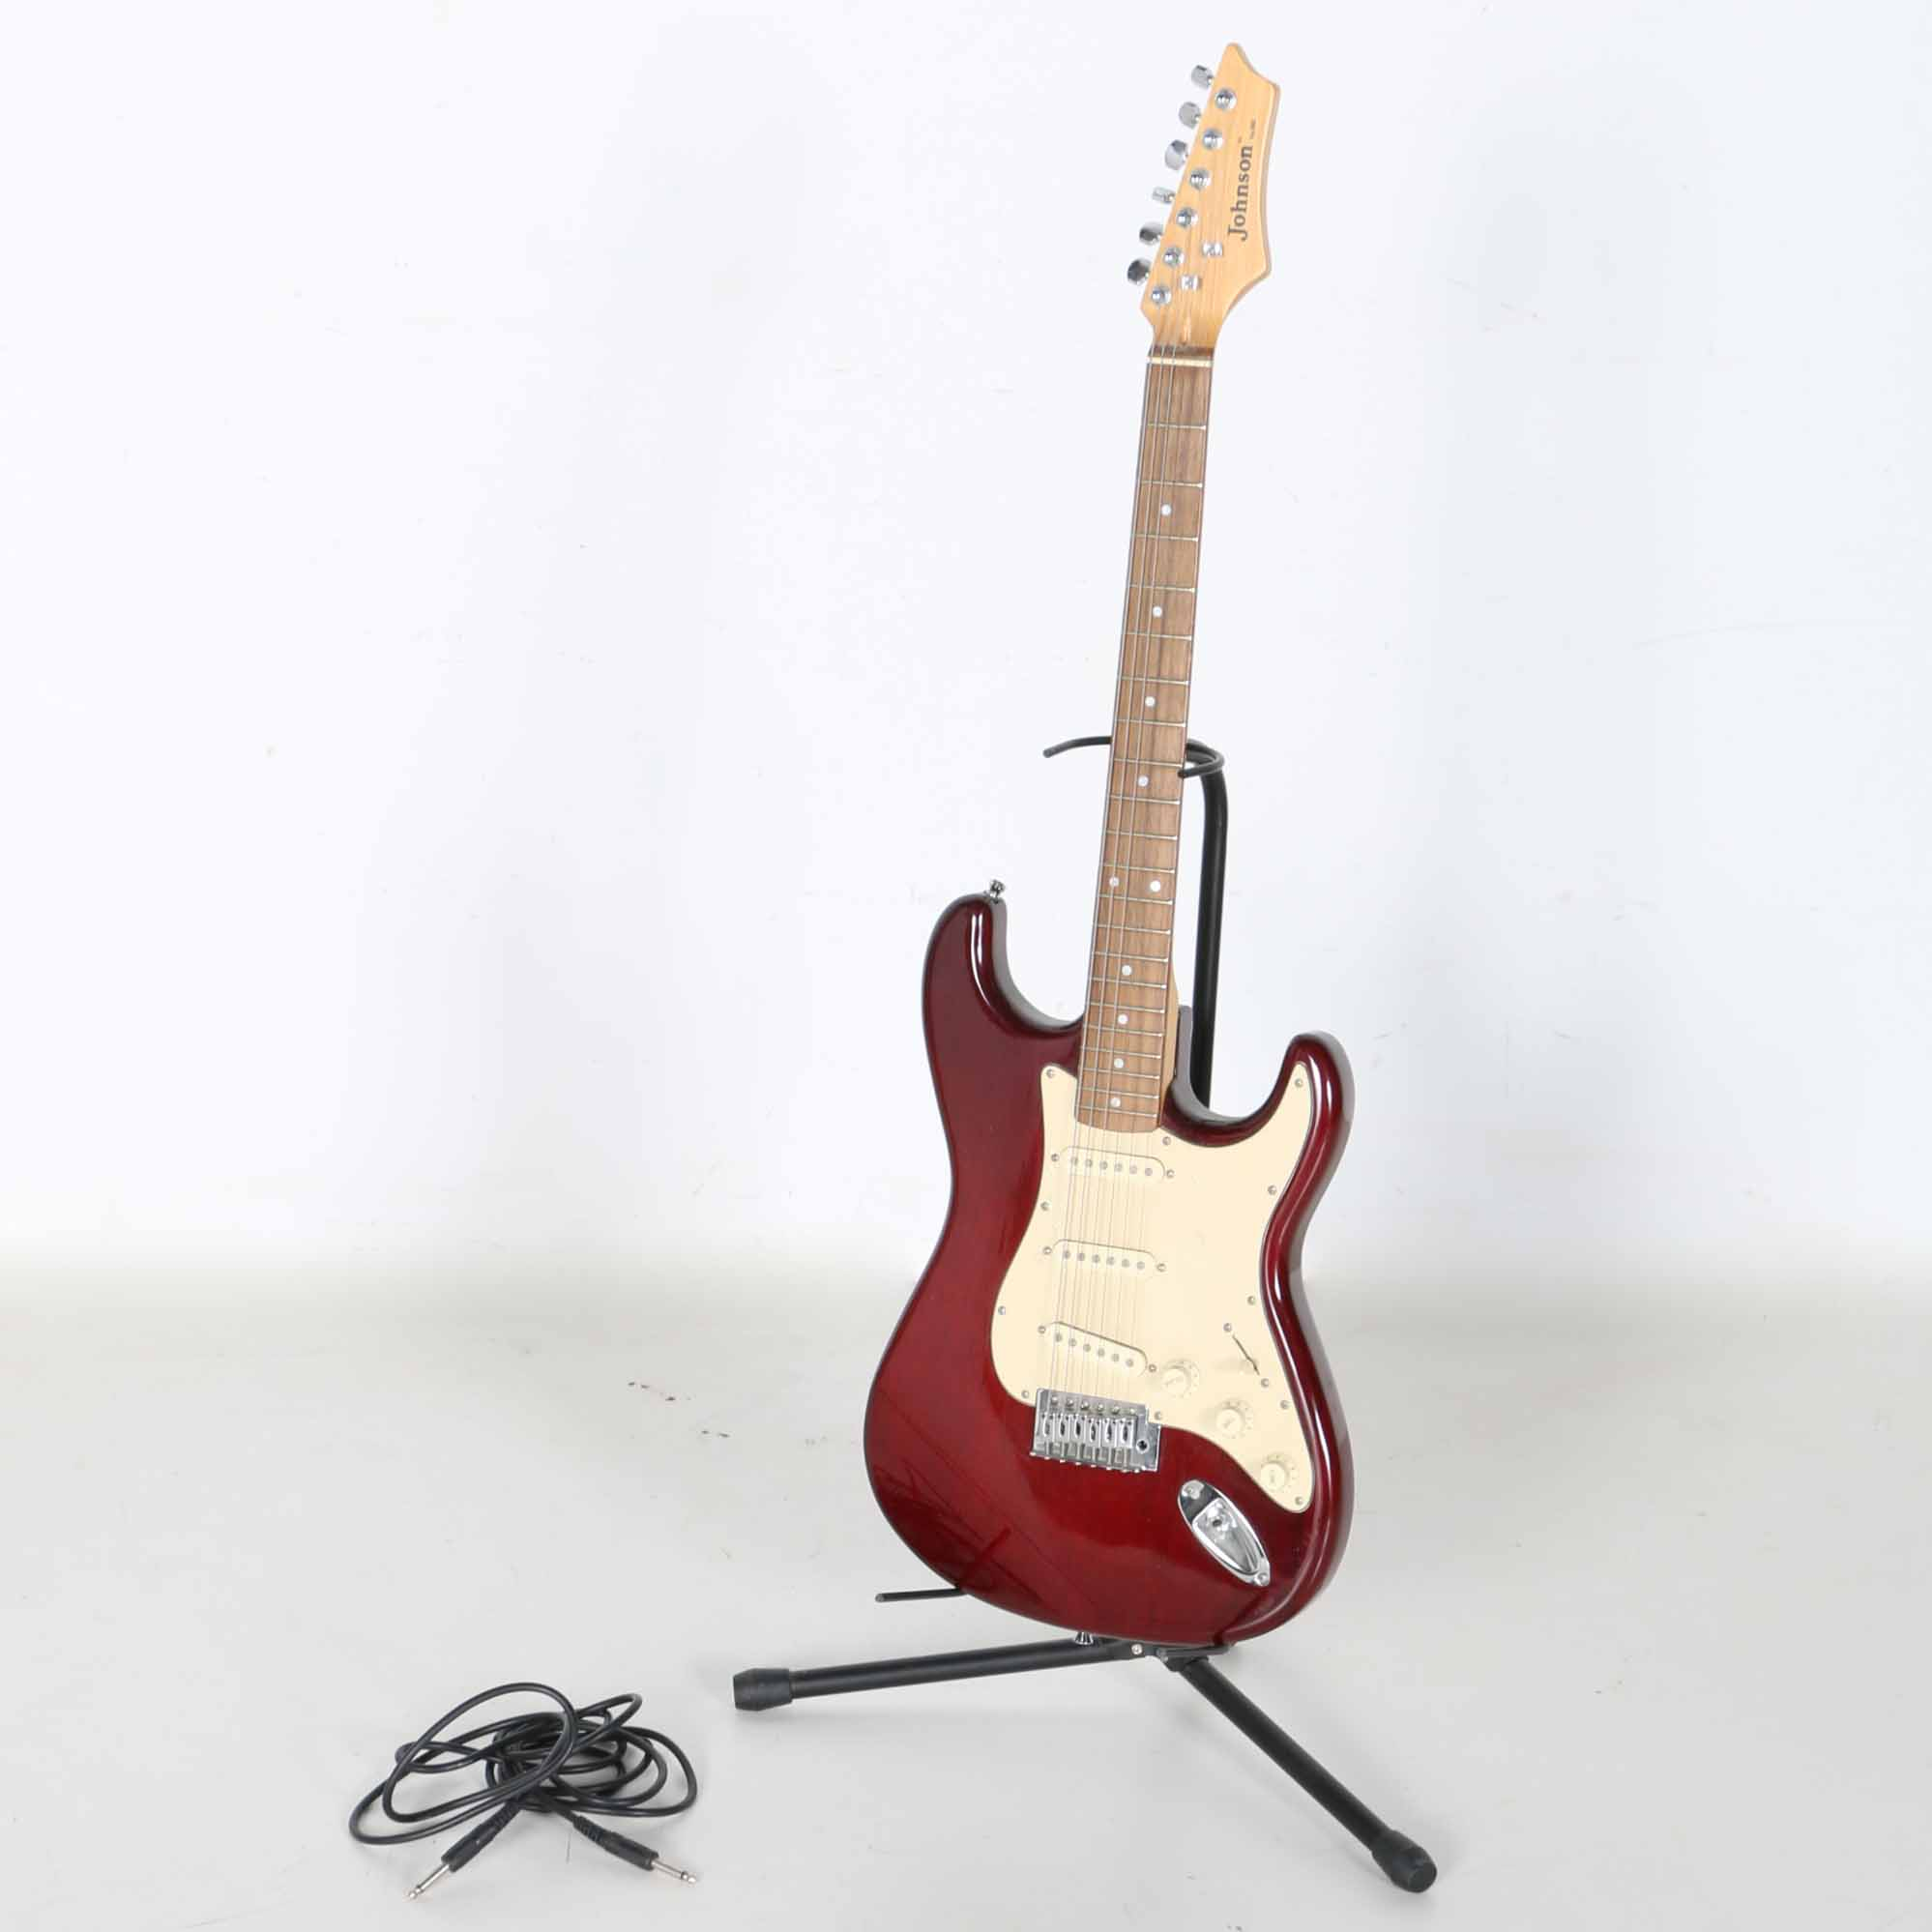 Awesome Guitar Toggle Switch Wiring Big 3 Pickup Les Paul Wiring Diagram Shaped How To Install Bulldog Remote Start How To Wire Guitar Pickups Youthful How To Install Remote Start Alarm Blue3 Pickup Les Paul Wiring Burgundy Johnson Strat Style Electric Guitar And Stand : EBTH